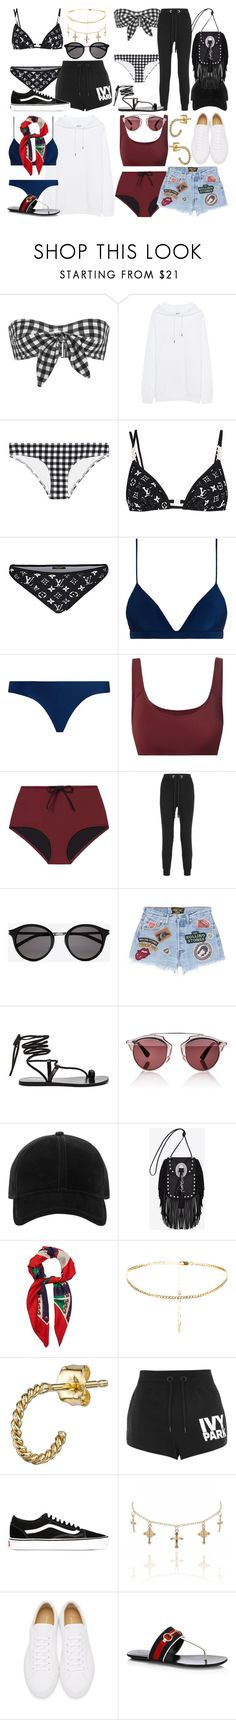 """""""Pool Party/Summer"""" by whoiselle ❤ liked on Polyvore featuring Ephemera, Acne Studios, Zimmermann, Solid & Striped, No Ka'Oi, Yves Saint Laurent, MadeWorn, Matisse, Christian Dior and rag & bone"""